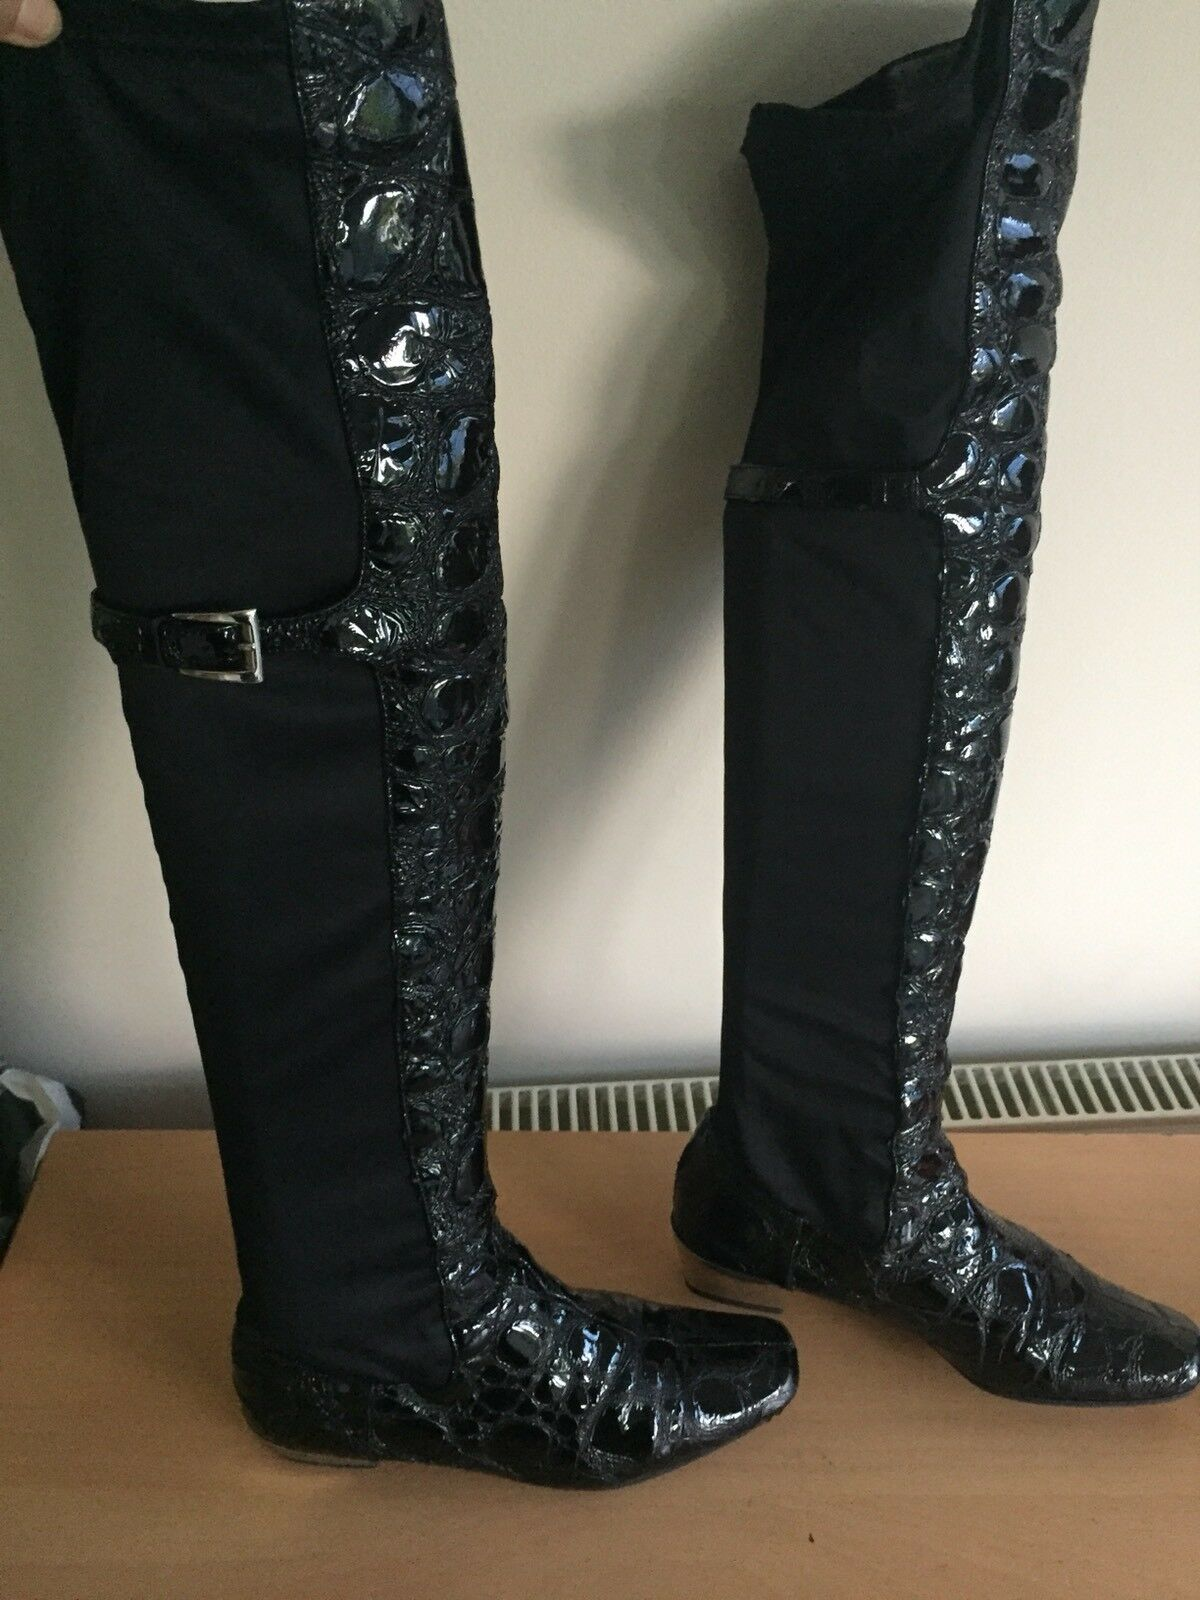 Grandes zapatos con descuento russell and bromley 5, Black Knee High Boots, Croc Pattern, Silver Heels